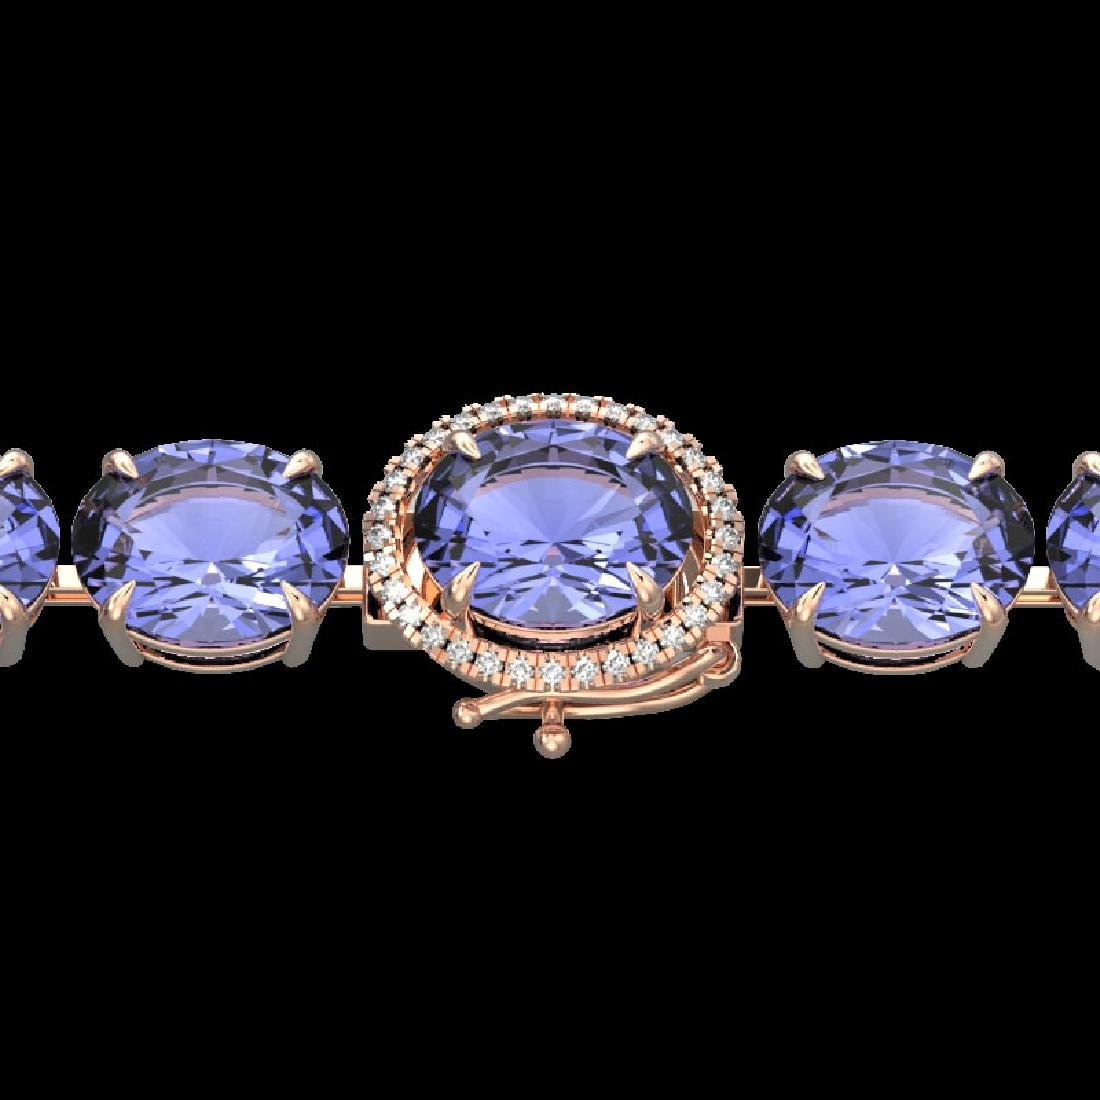 75 CTW Tanzanite & Micro Pave VS/SI Diamond Halo